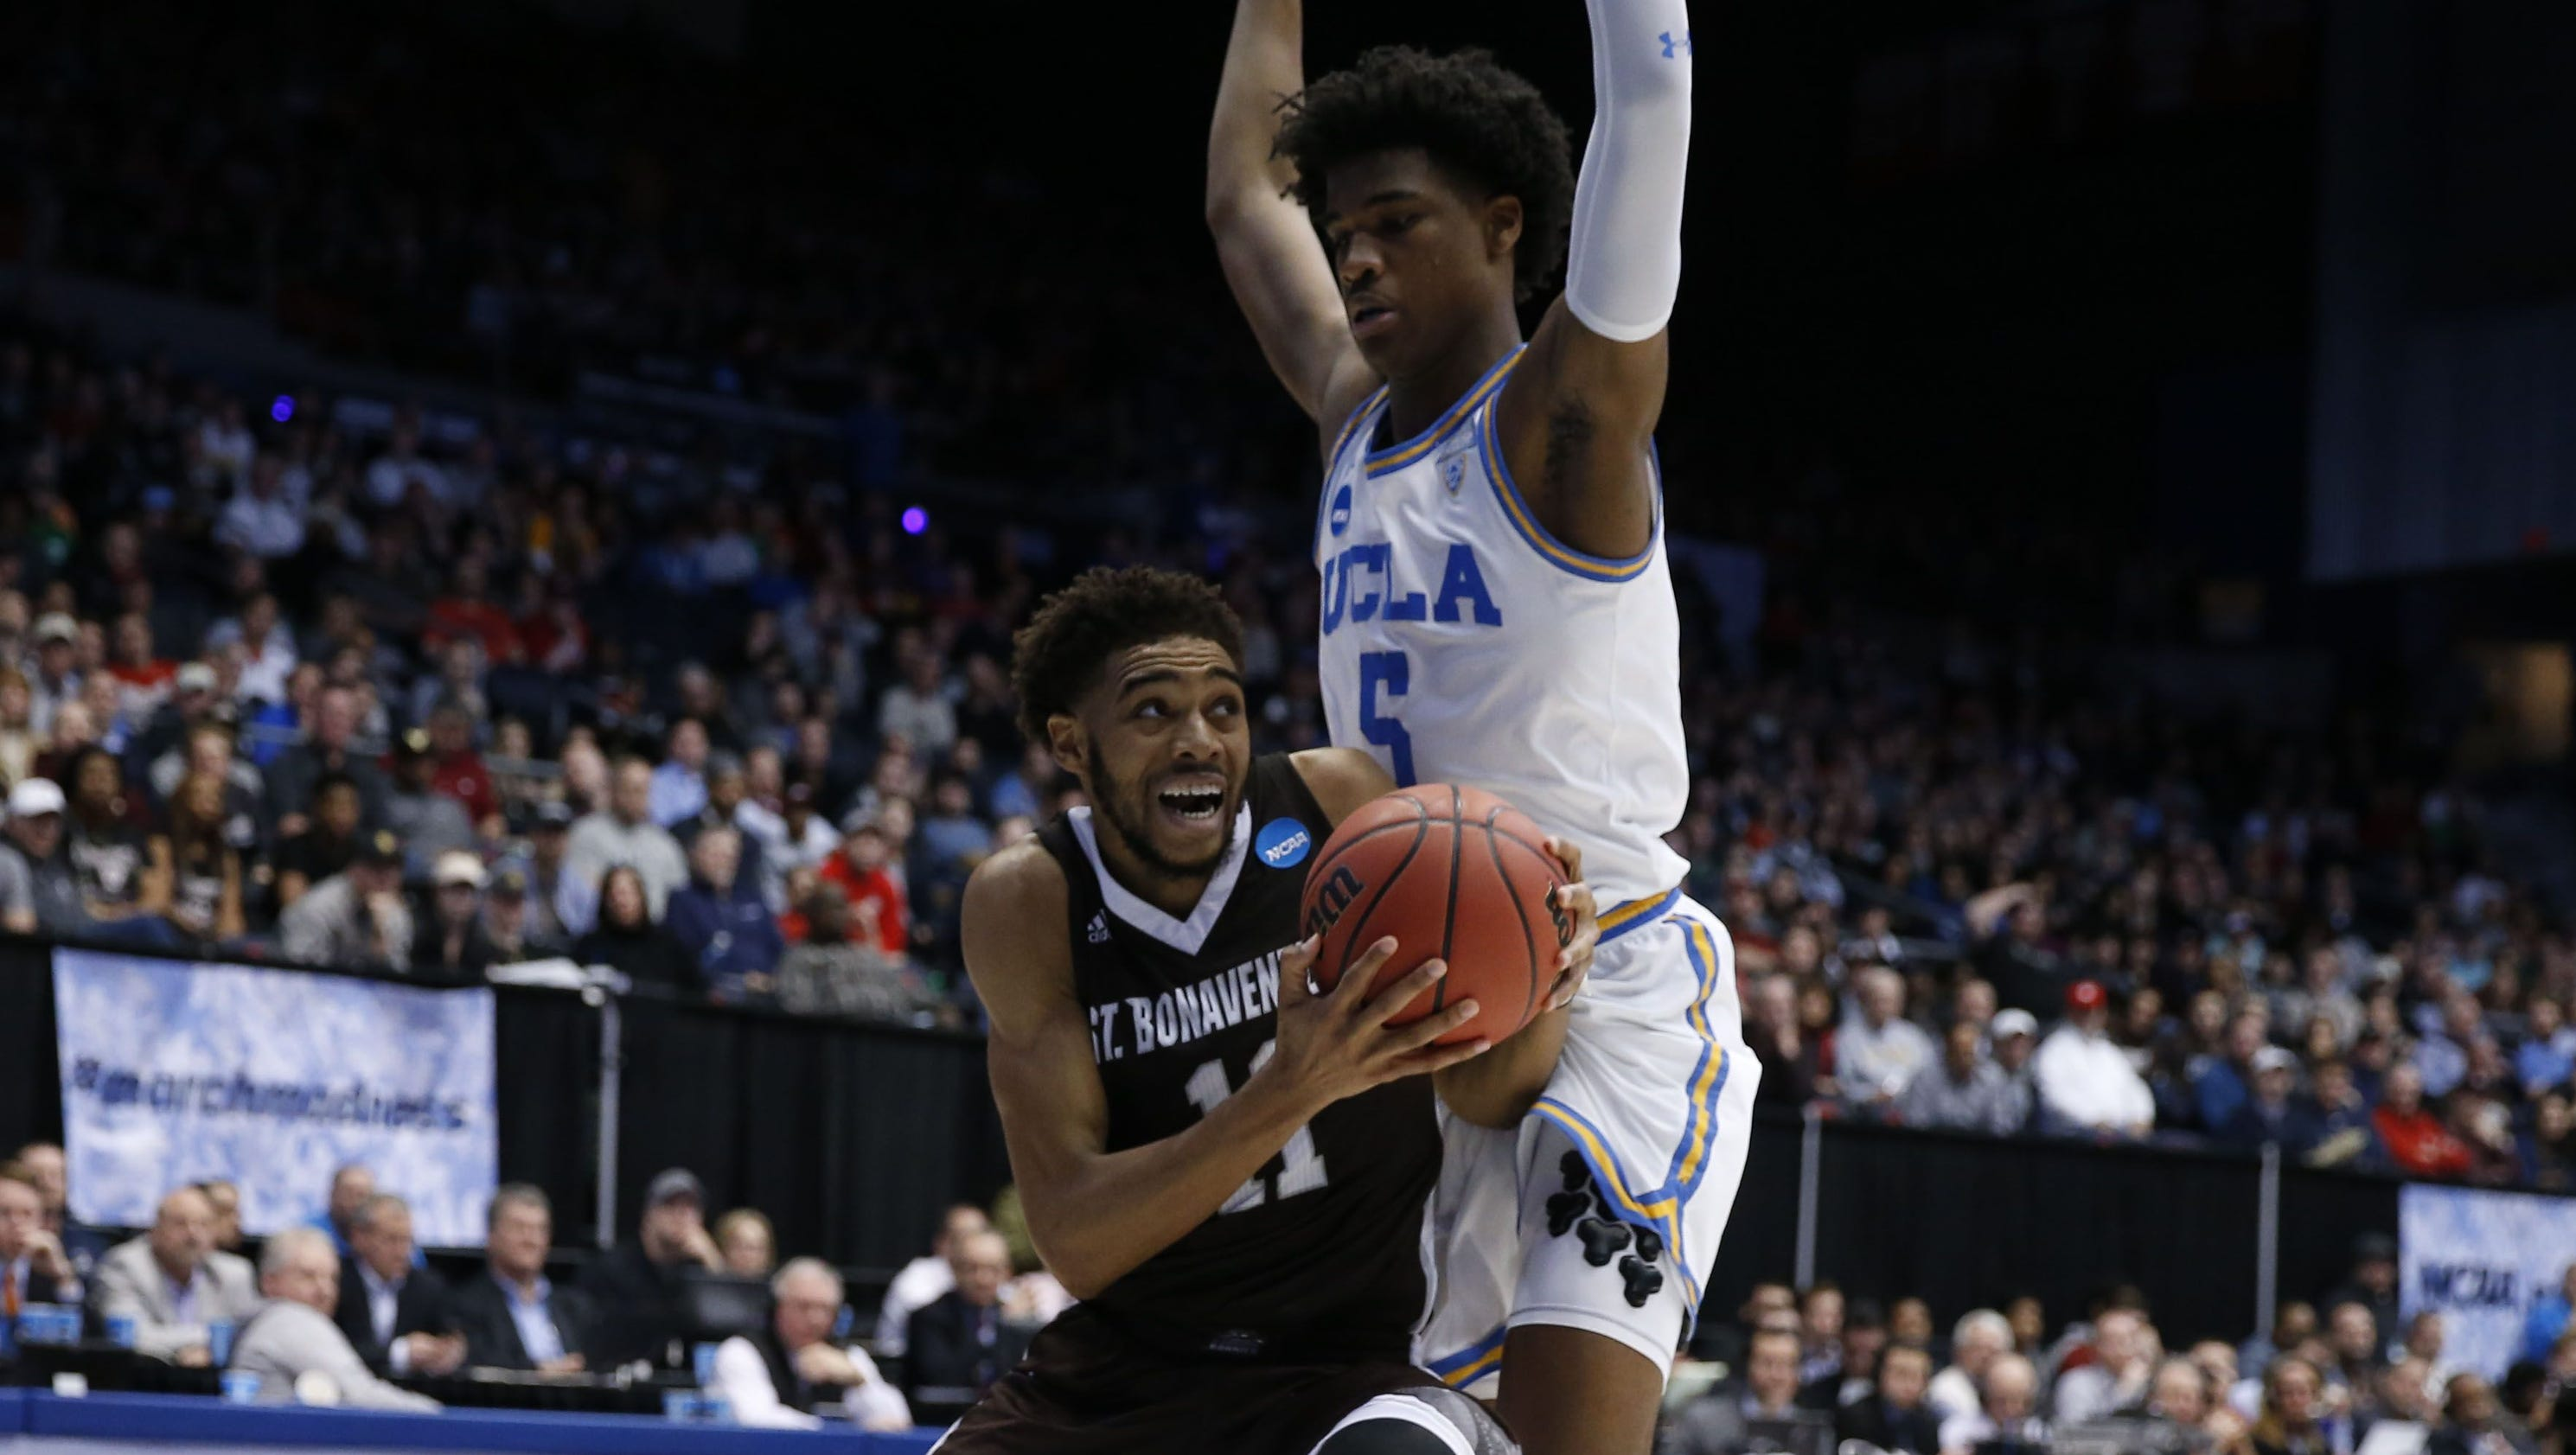 Courtney Stockard, St. Bonaventure power past UCLA in NCAA tournament First Four game